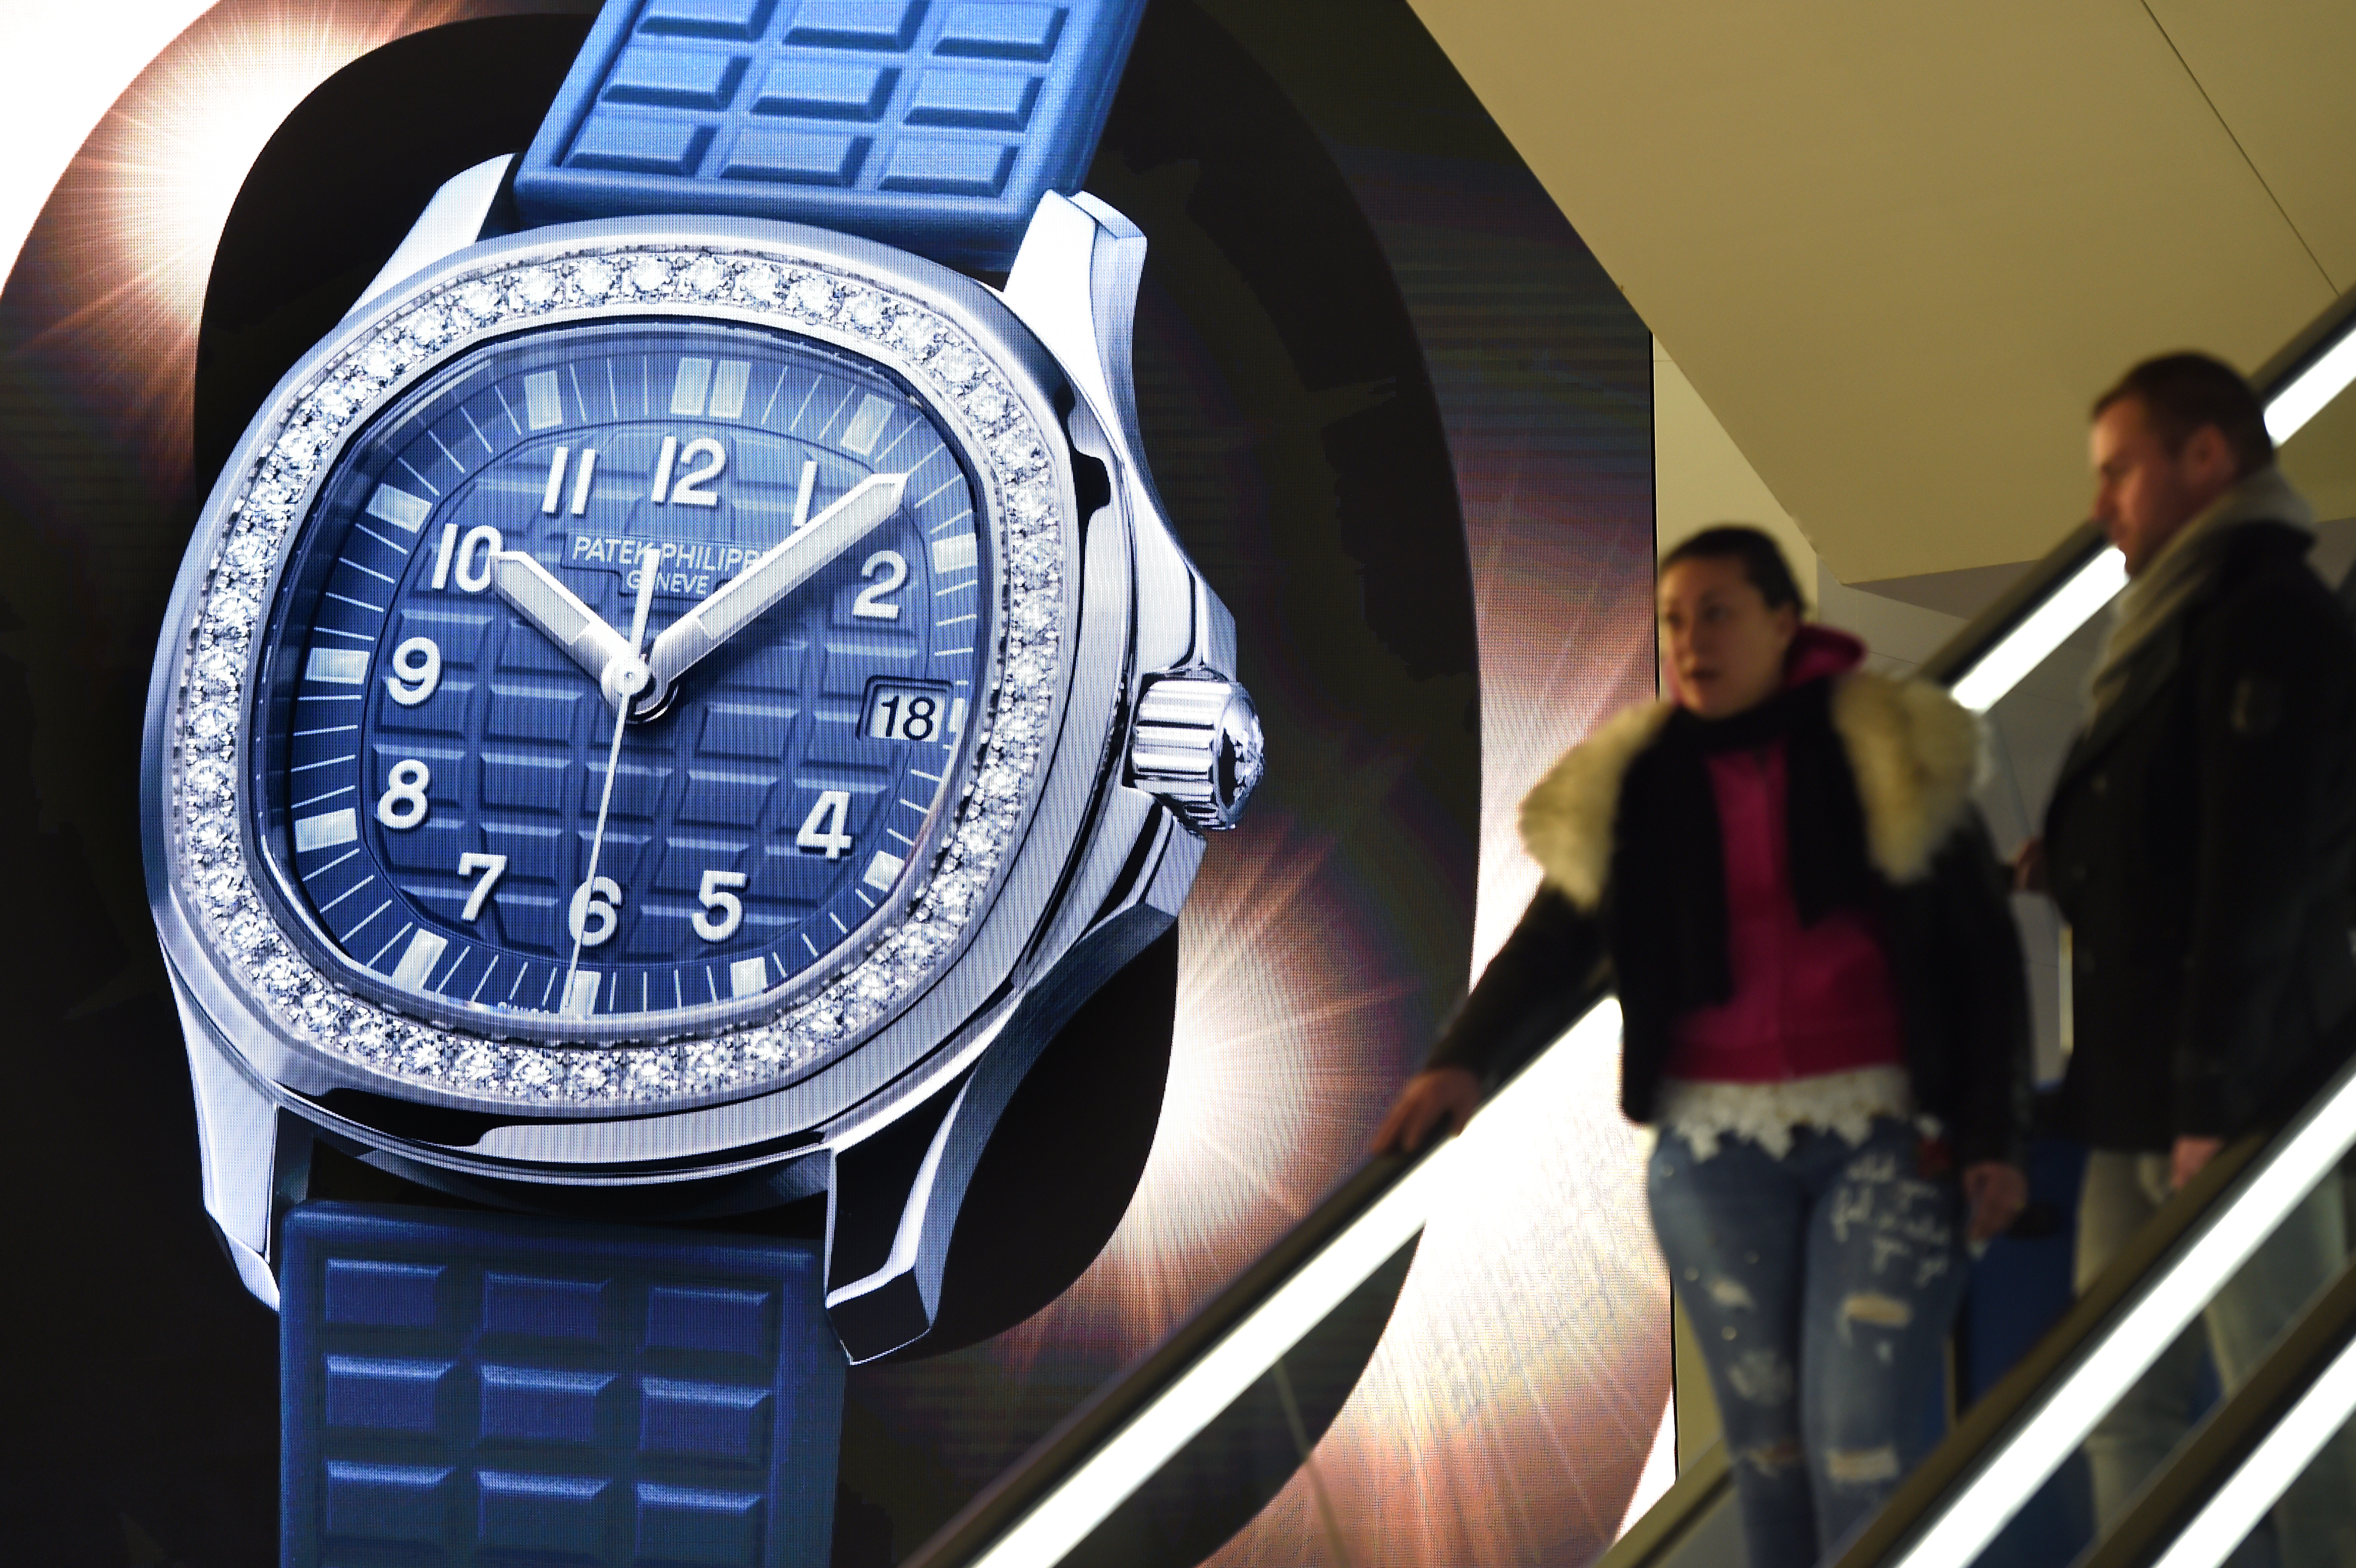 This photo taken on March 21, 2018 in Basel, Switzerland, shows a watch displayed on a giant screen at the stand of Swiss watchmaker Patek Philippe during press day, on the eve of the opening of the Baselworld watch and jewellery show.